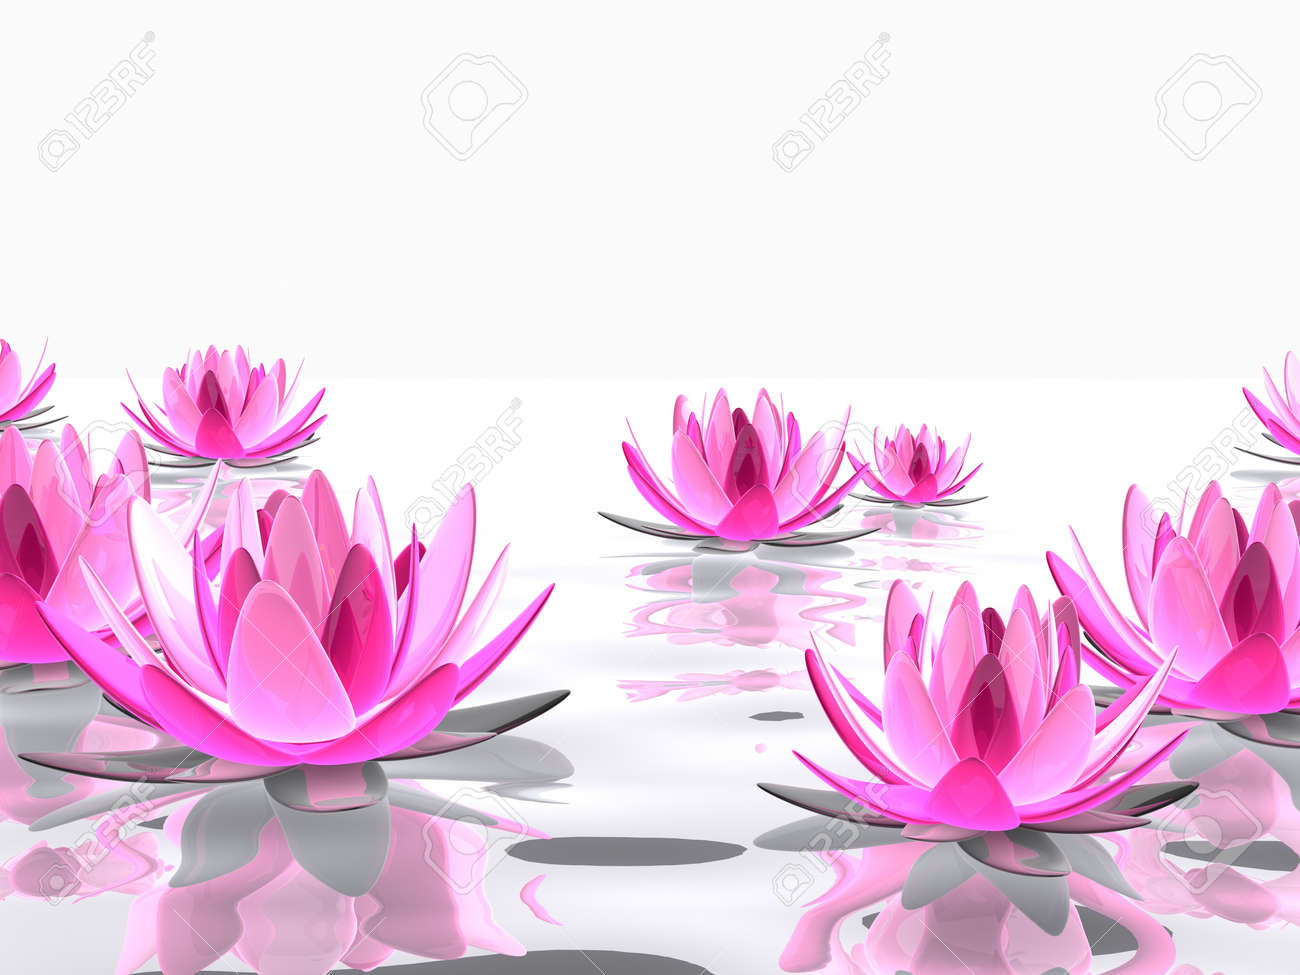 lotus flowers on water Stock Photo - 7165137